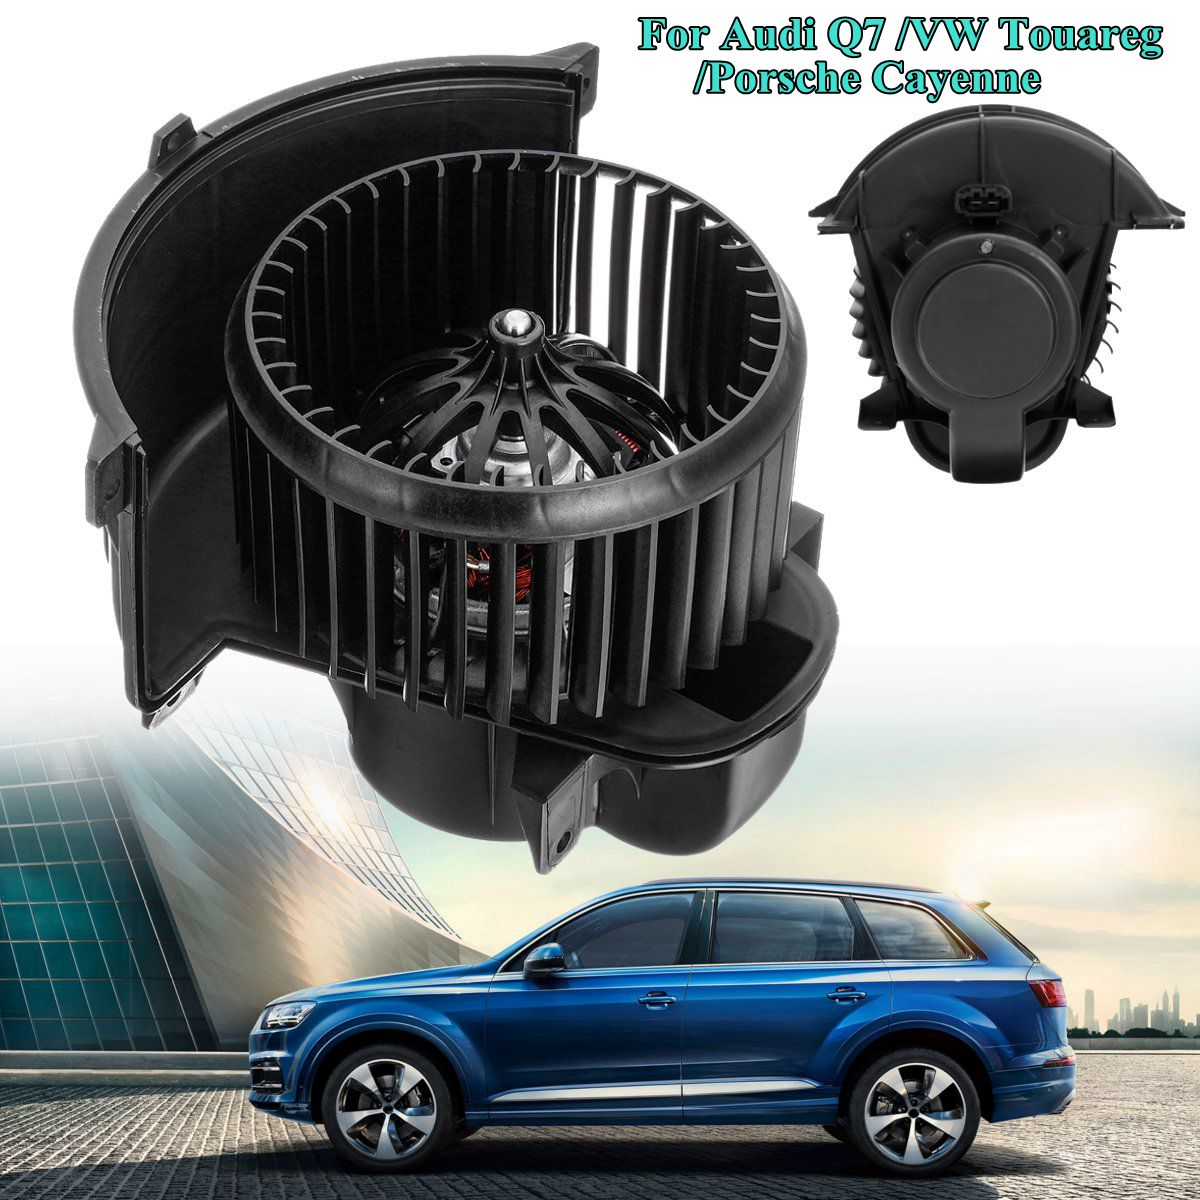 RHD New Front Heater Blower Motor with Cage For Audi Q7 for Volkswagen Touareg for Porsche Cayenne 7L0820021N 12v auto ac fan blower motor for audi q7 porsche cayenne vw amarok touareg lhd cw 7l0820021q 7l0820021m 7l0820021l